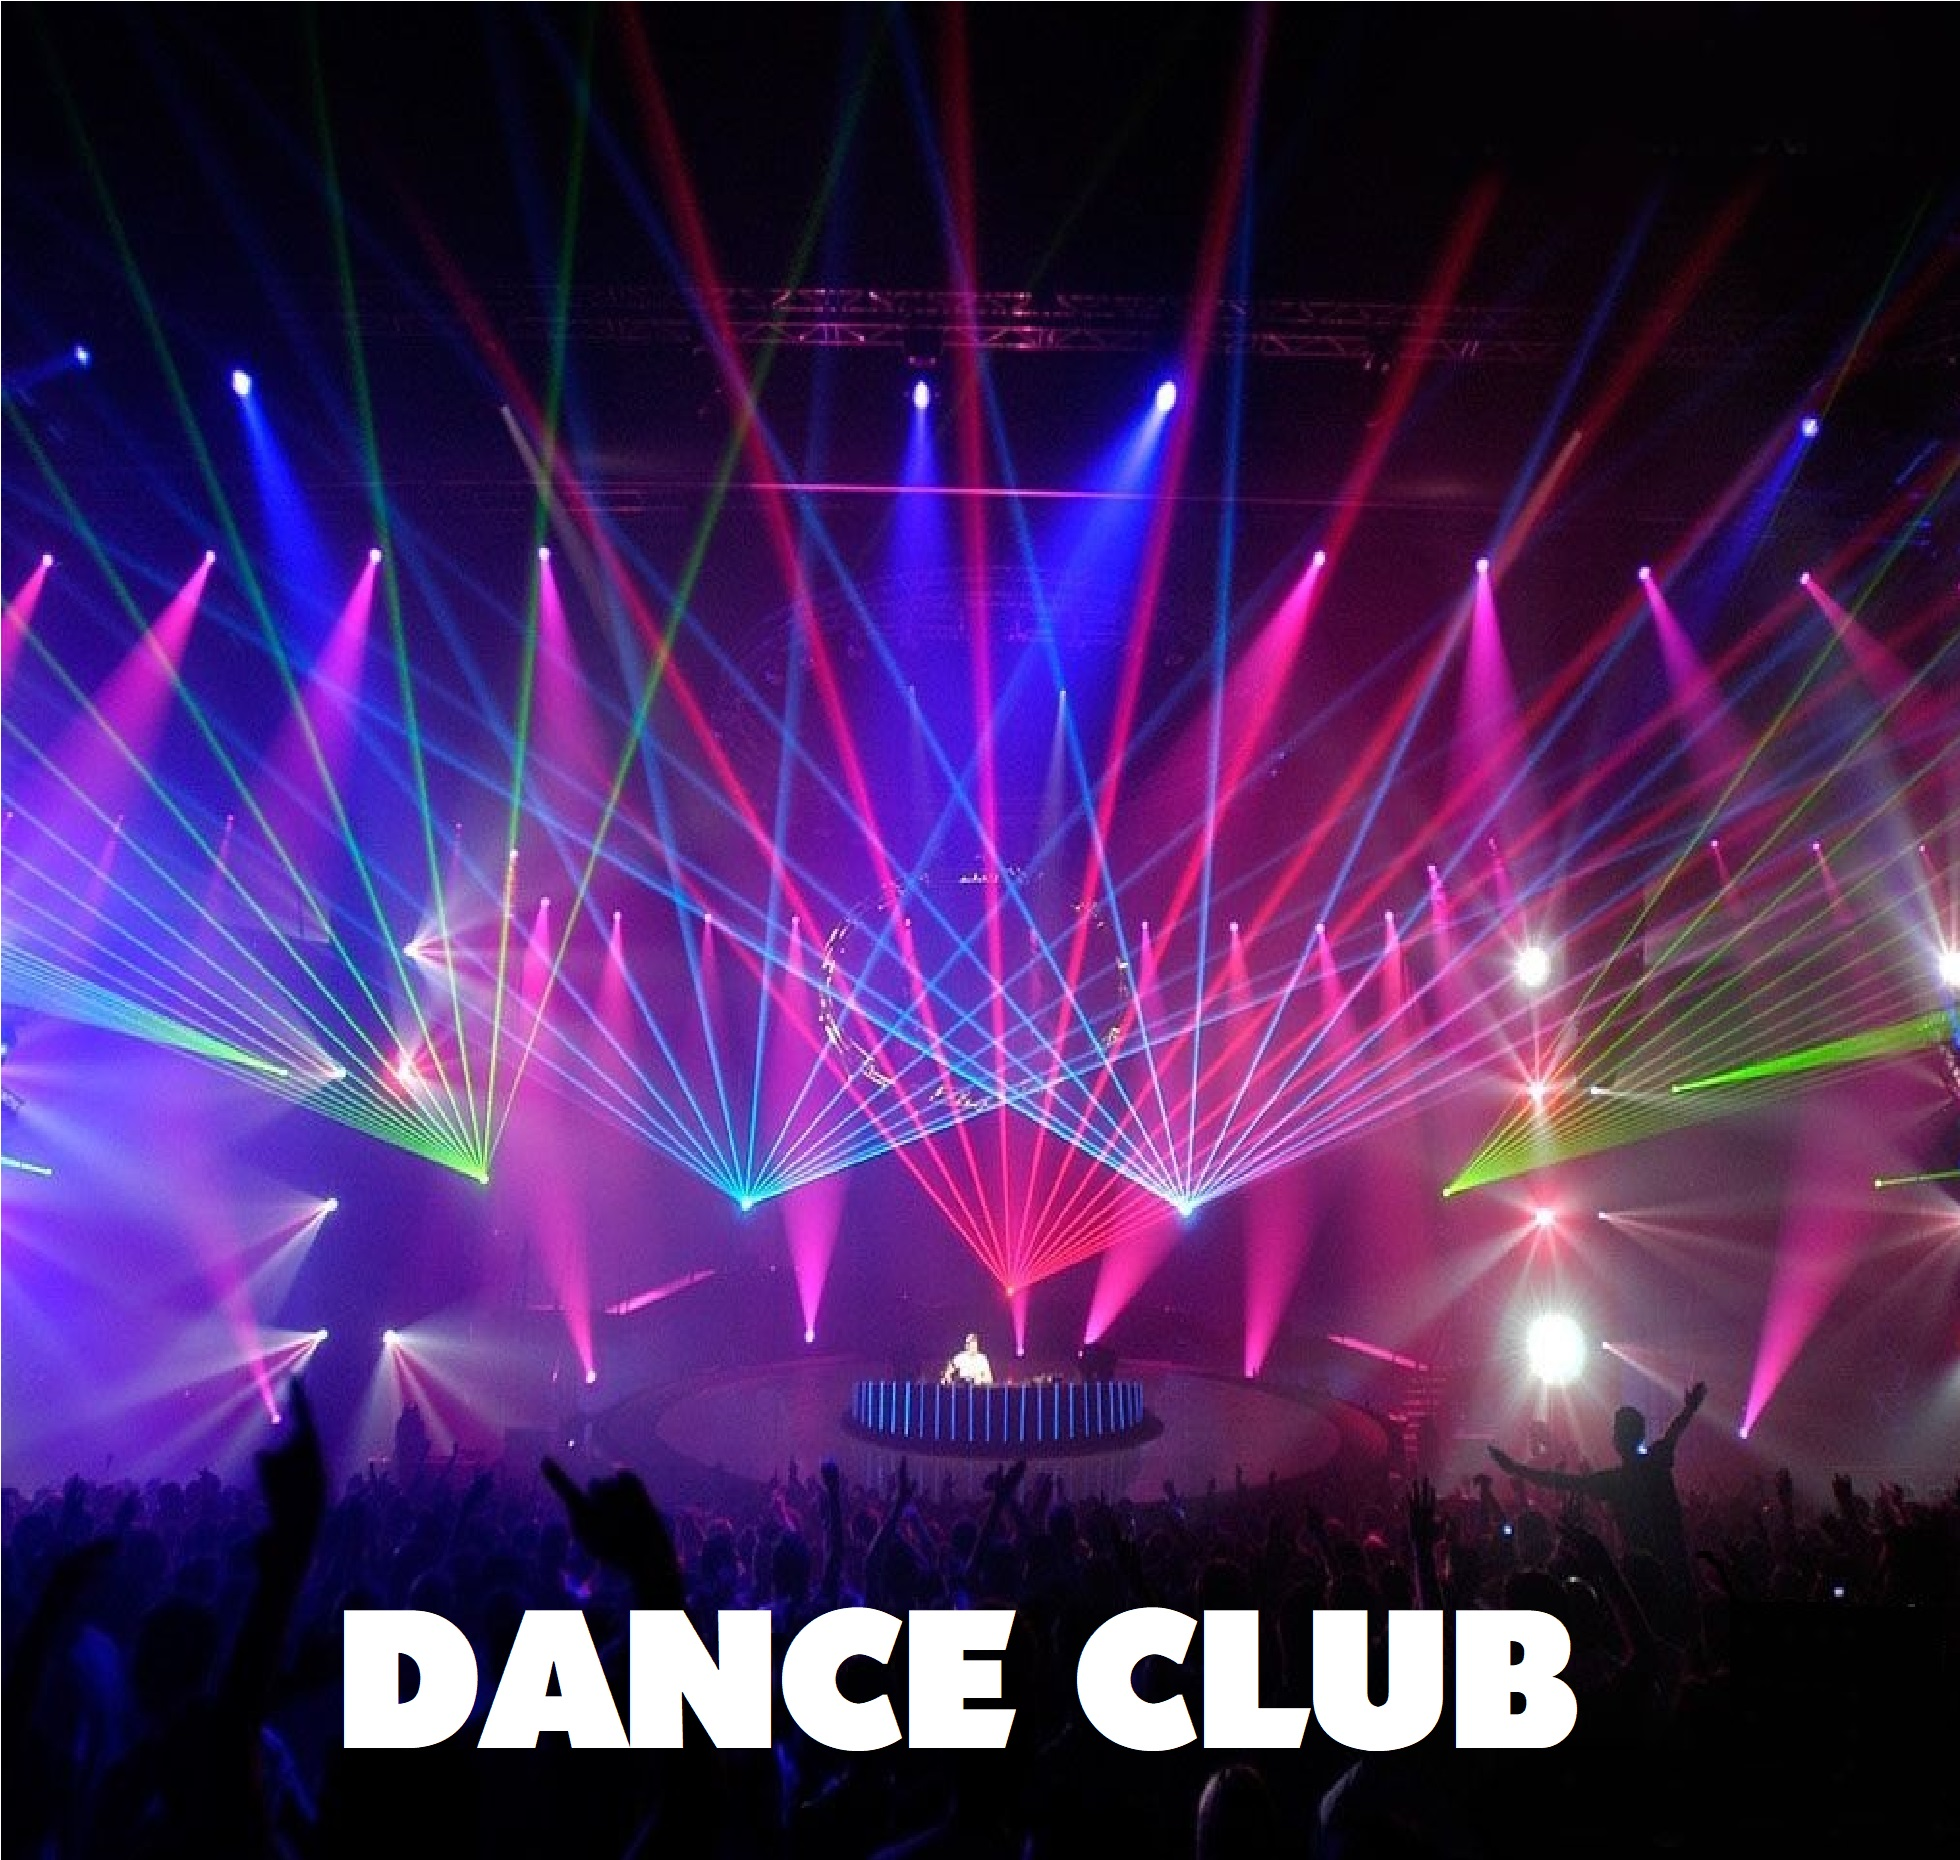 Bringing Something New to the Table with His Music: This is Dance Club (D.C.)